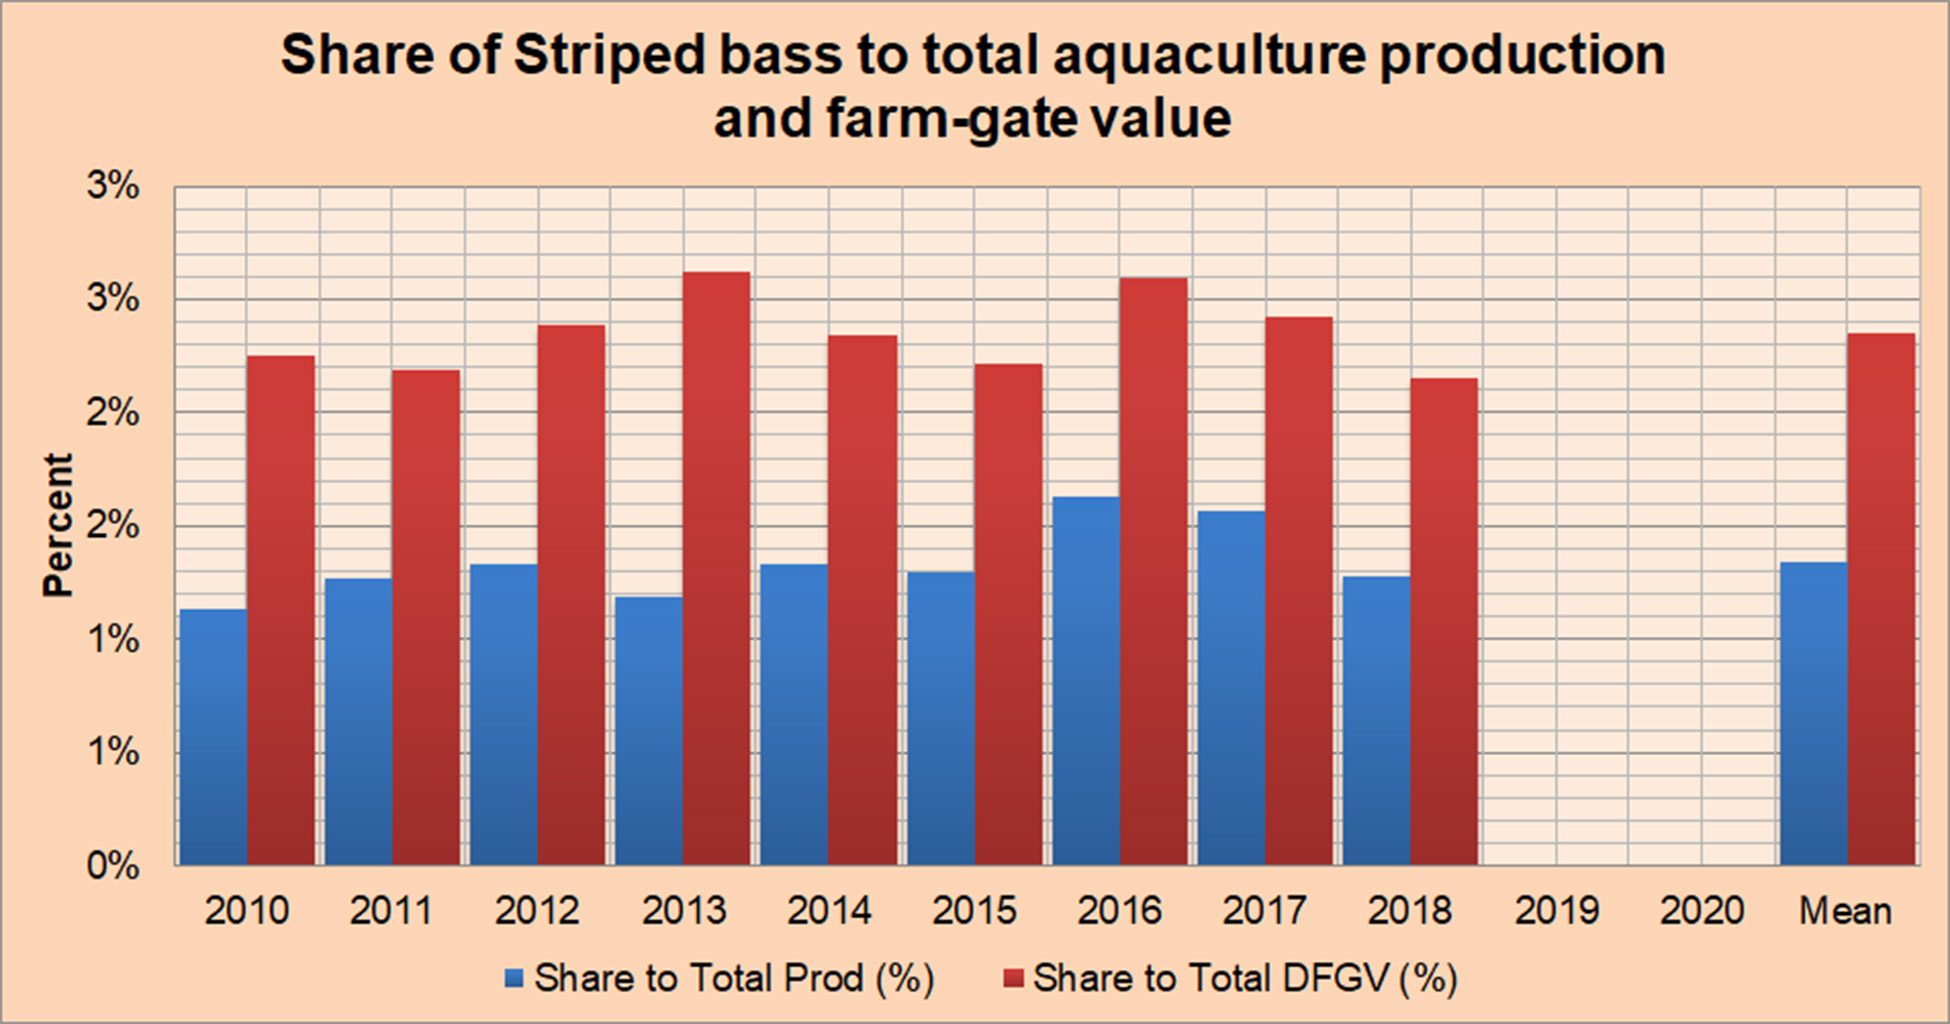 Share of Striped Bass to Total Aquaculture Production